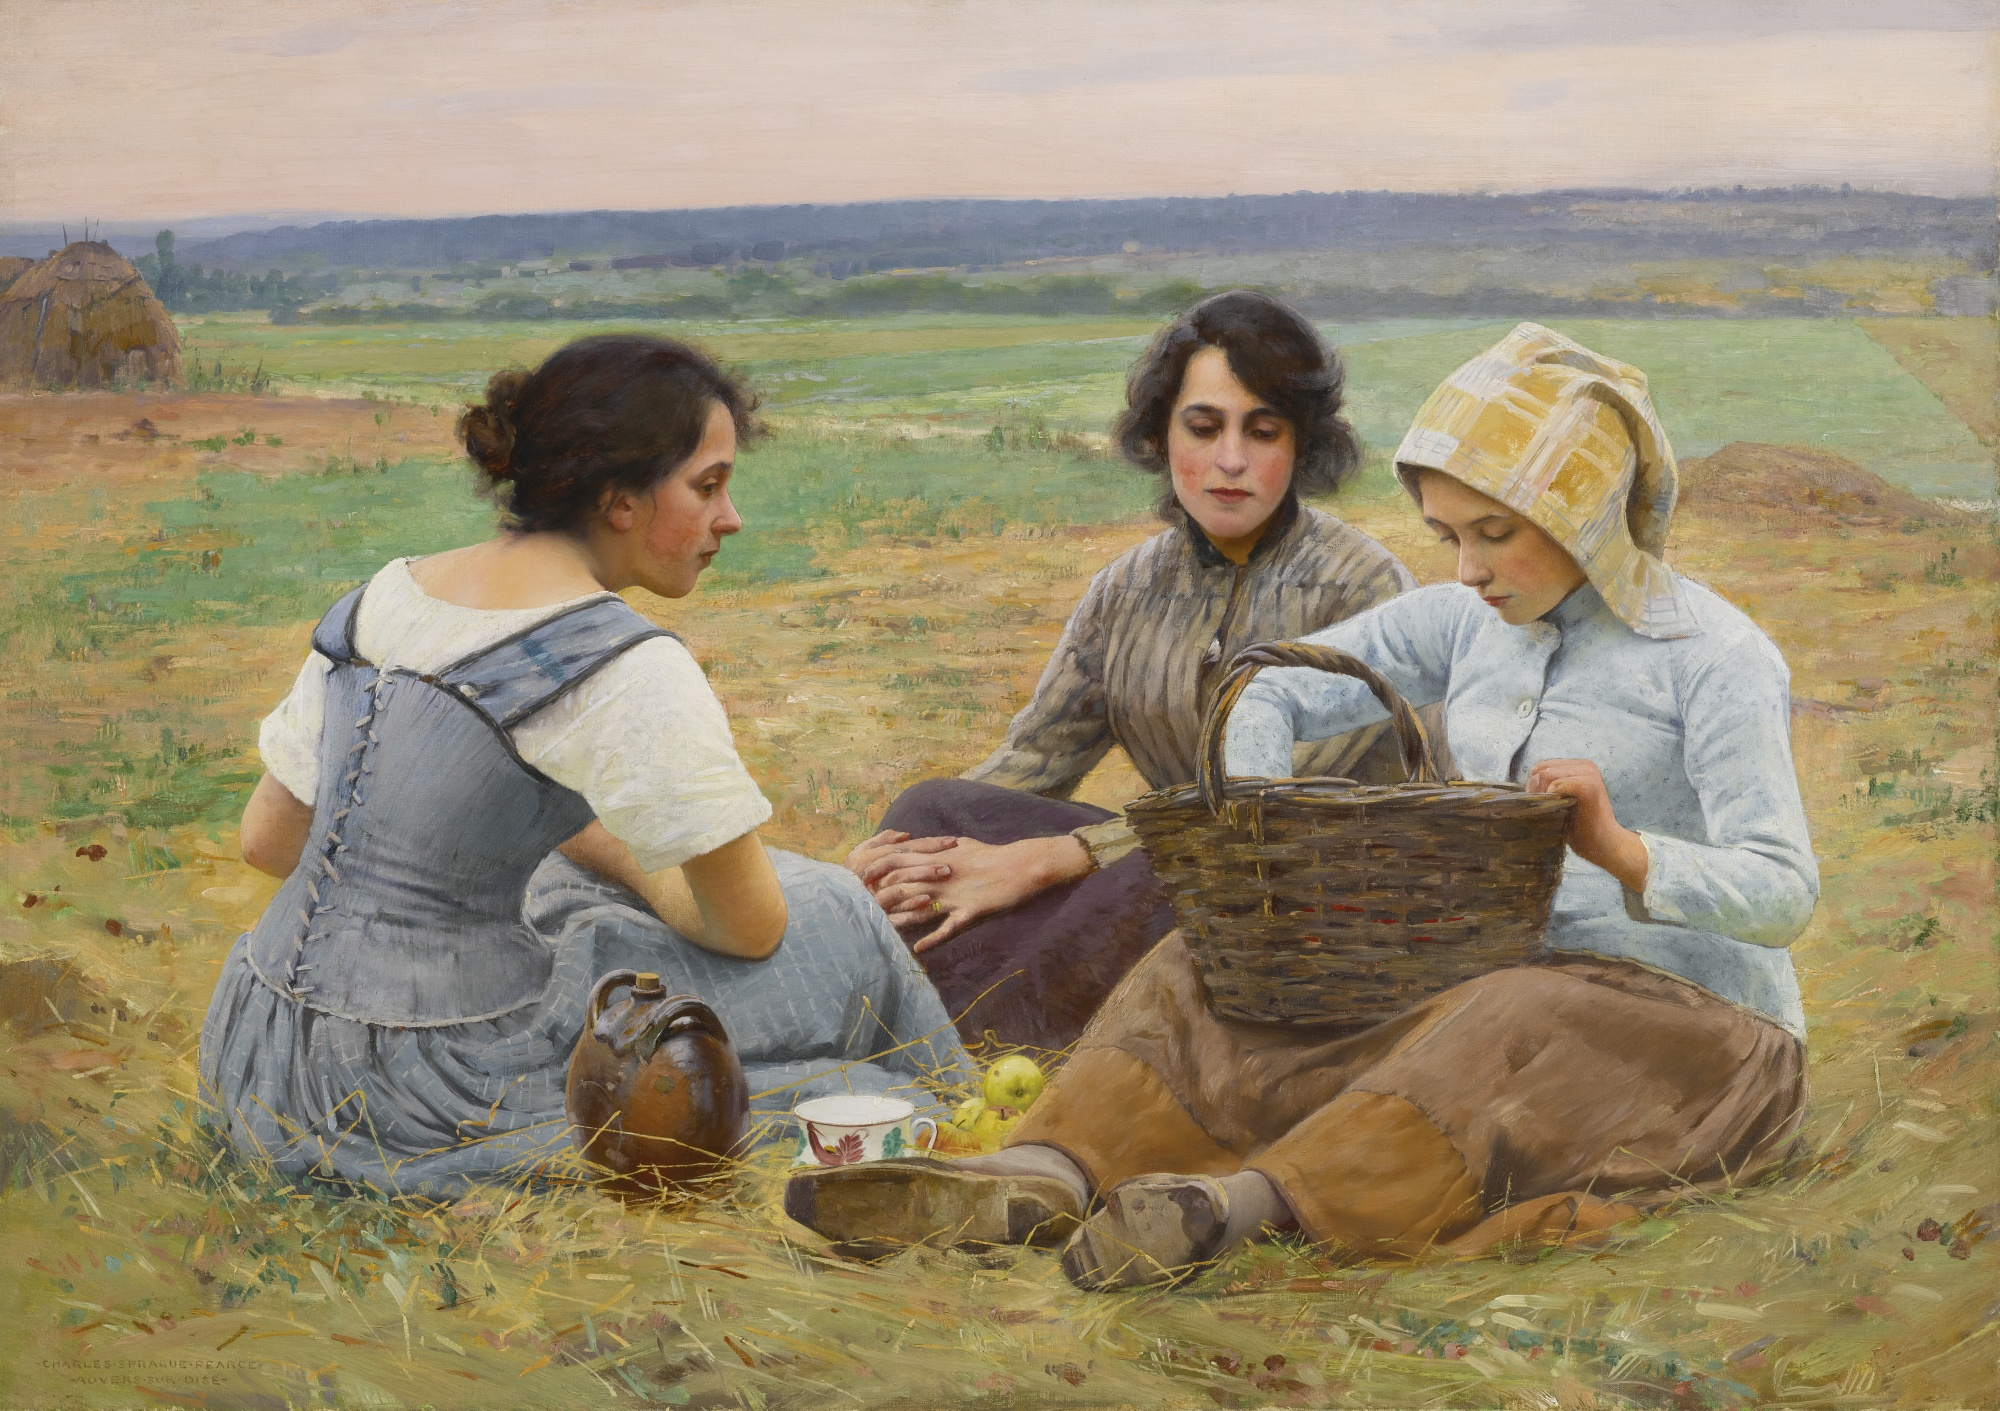 Lunch Break in the Fields, by Charles Sprague Pearce